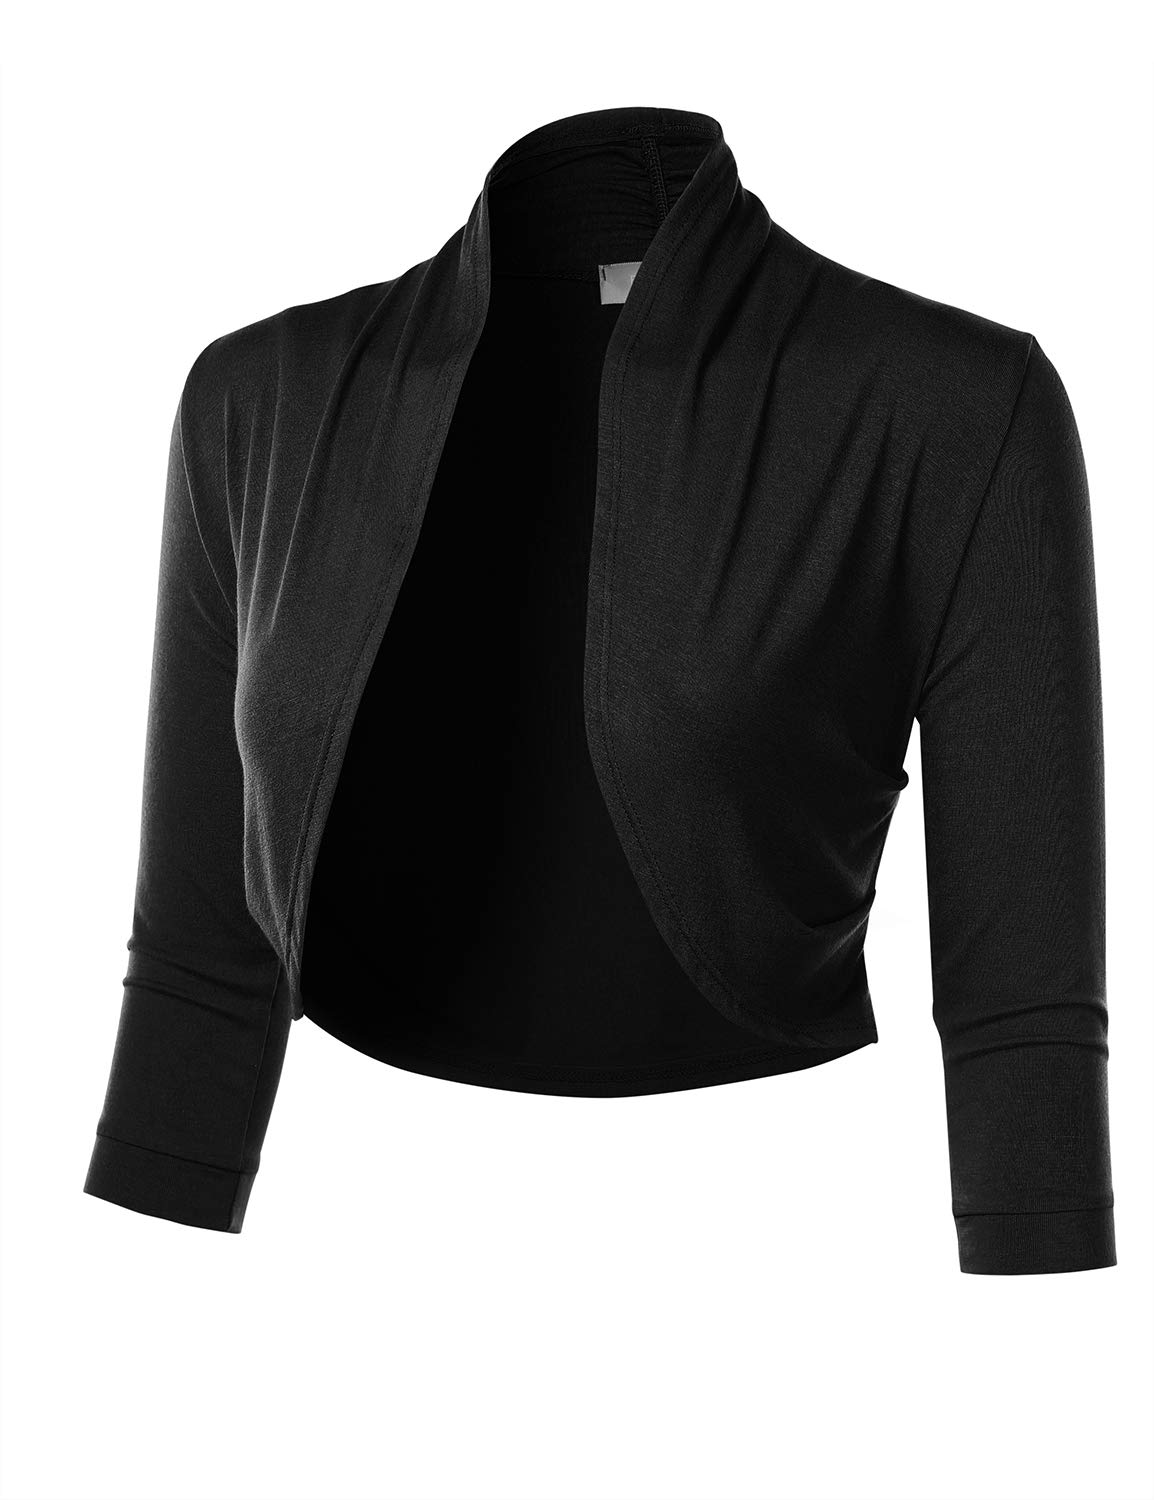 FLORIA Women's 3/4 Sleeve Open Front Cropped Bolero Shrug Cardigan with Side Pleats Black M by FLORIA